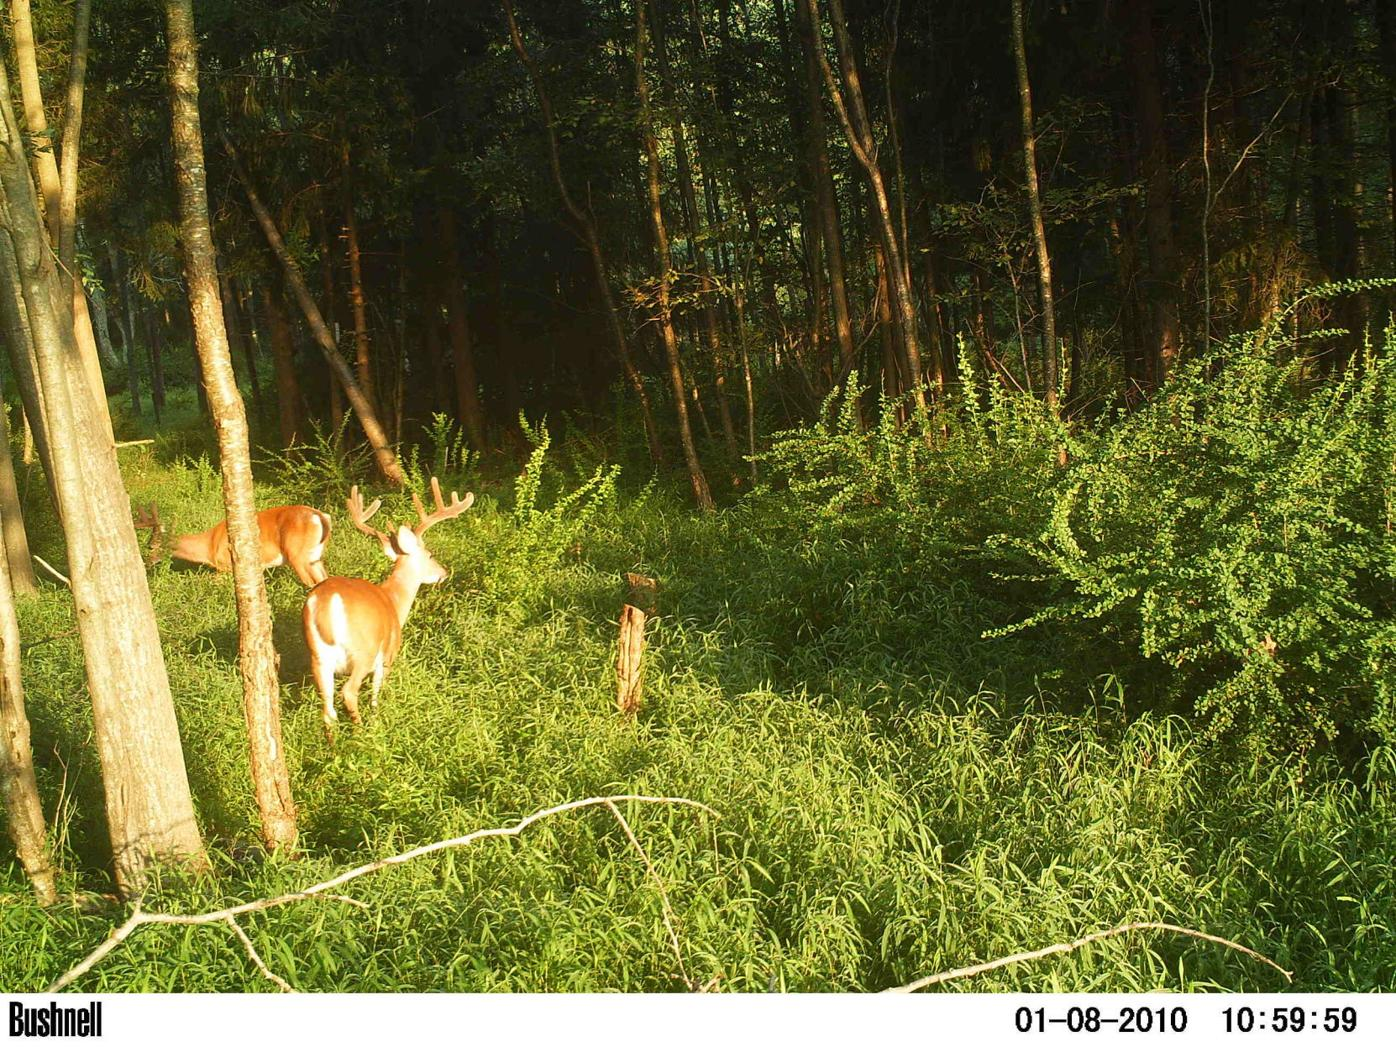 Game camera shows buck with velvet antlers